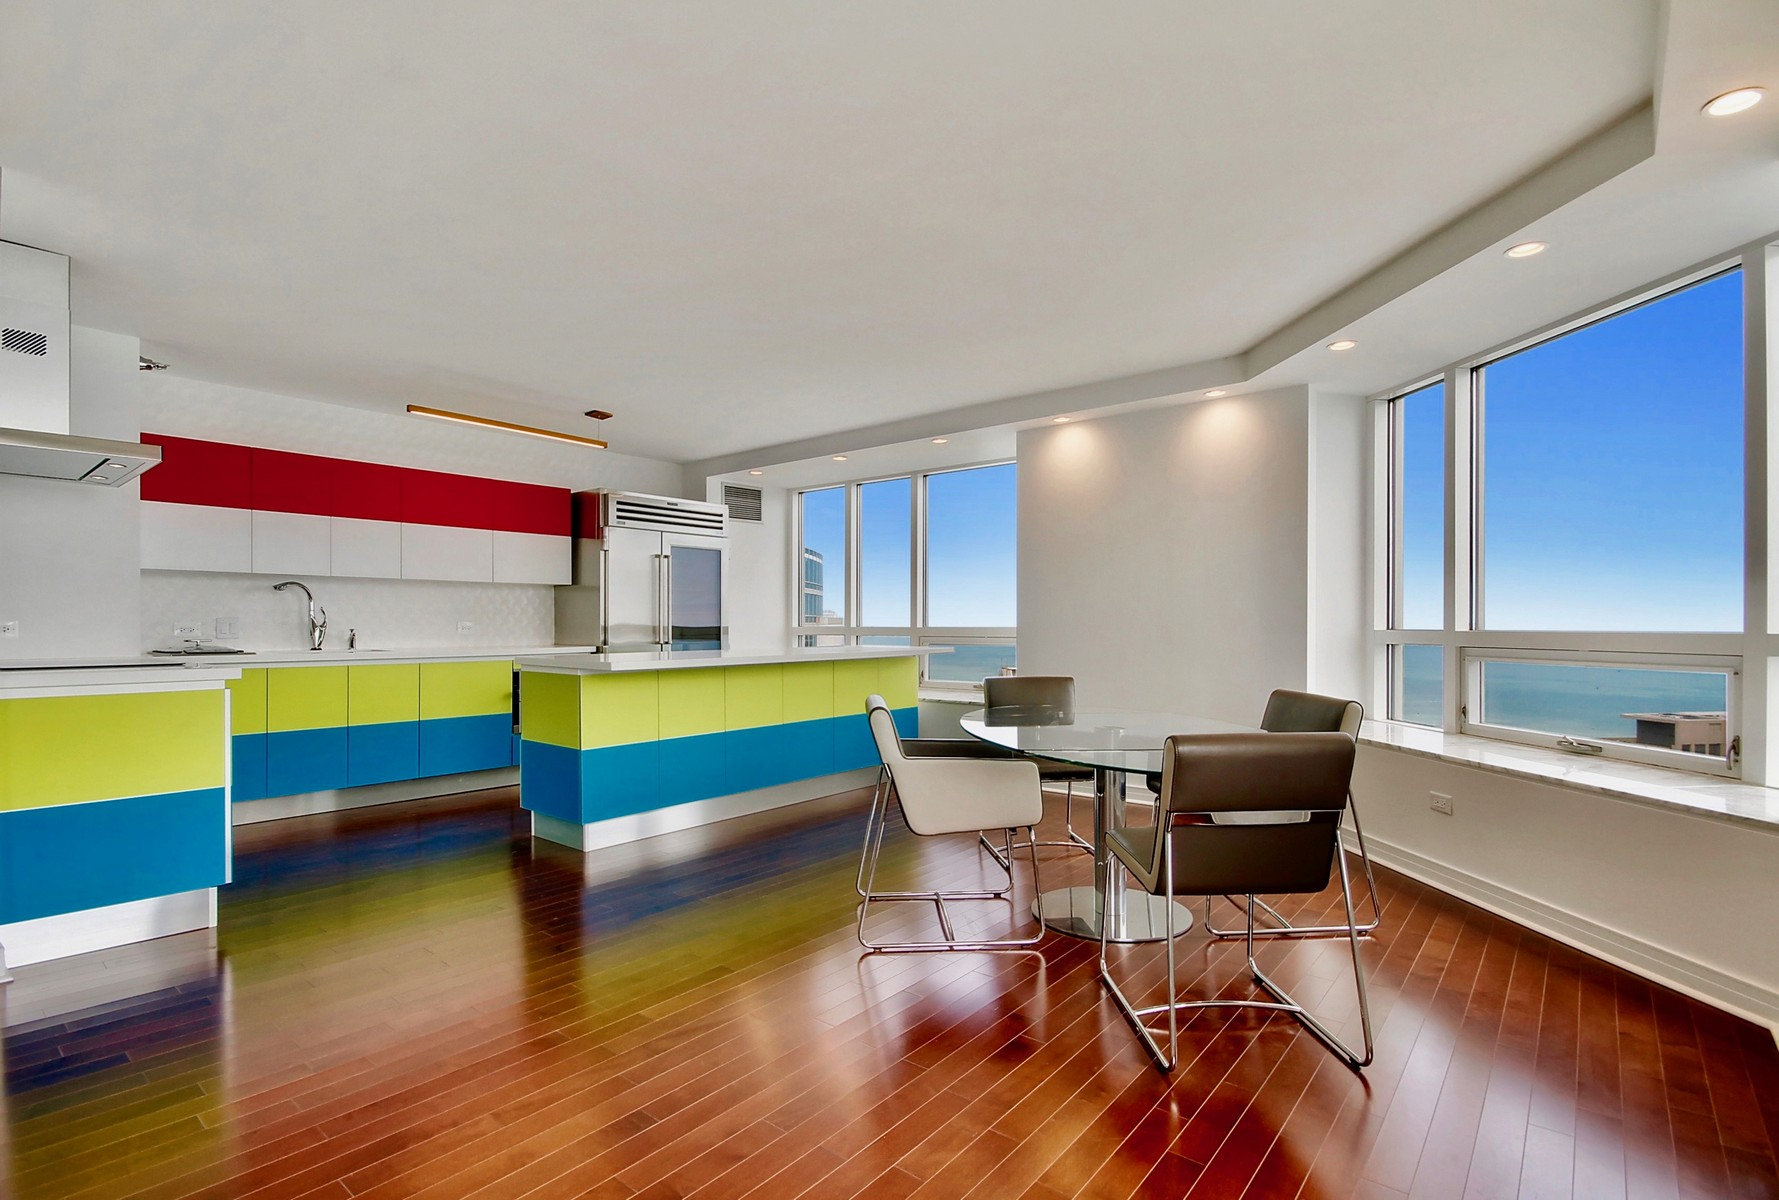 Appartement en copropriété pour l Vente à Awesome Three-Bedroom 512 N McClurg Court Unit 5104-06 Near North Side, Chicago, Illinois, 60611 États-Unis